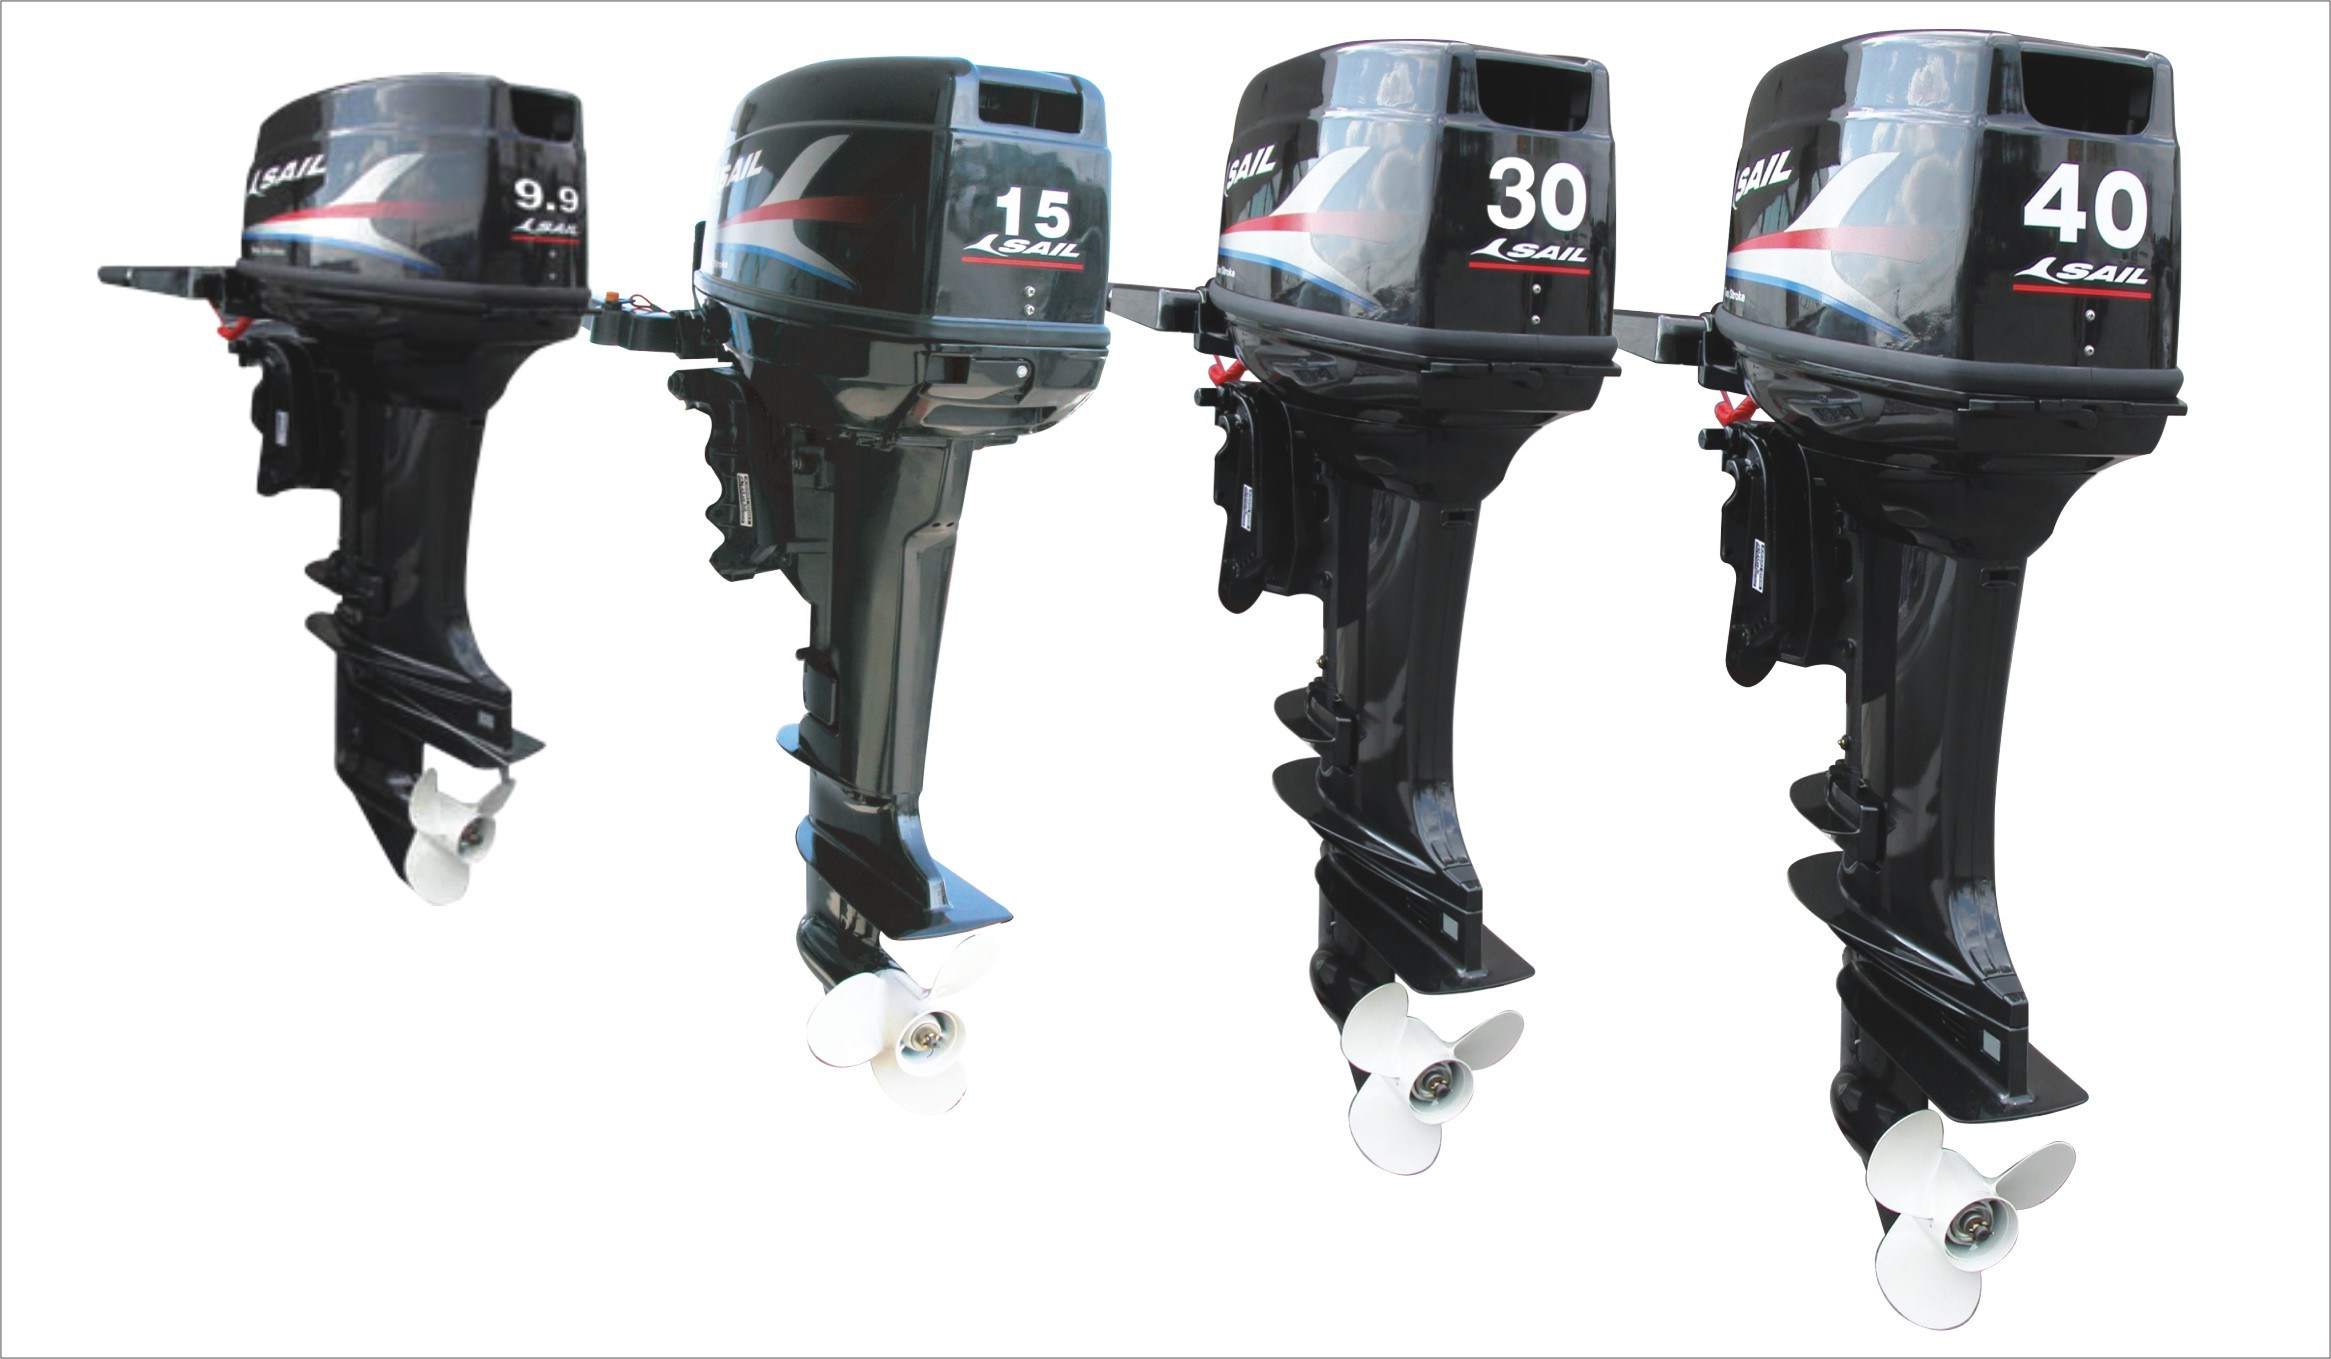 images of Outboard Motor